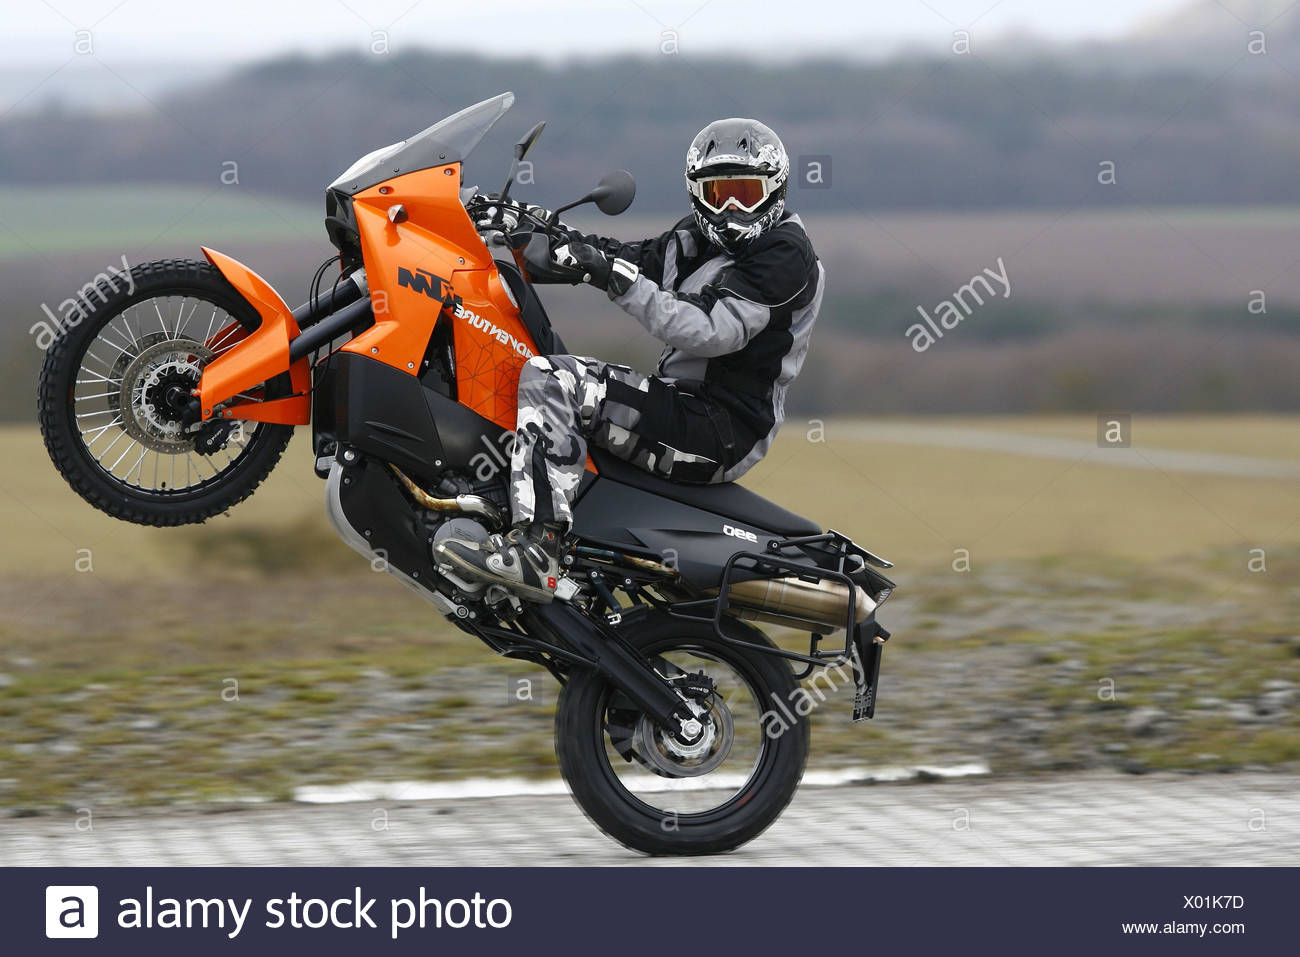 Motorcyclist, KTM Adventure, Wheelie, - Stock Image